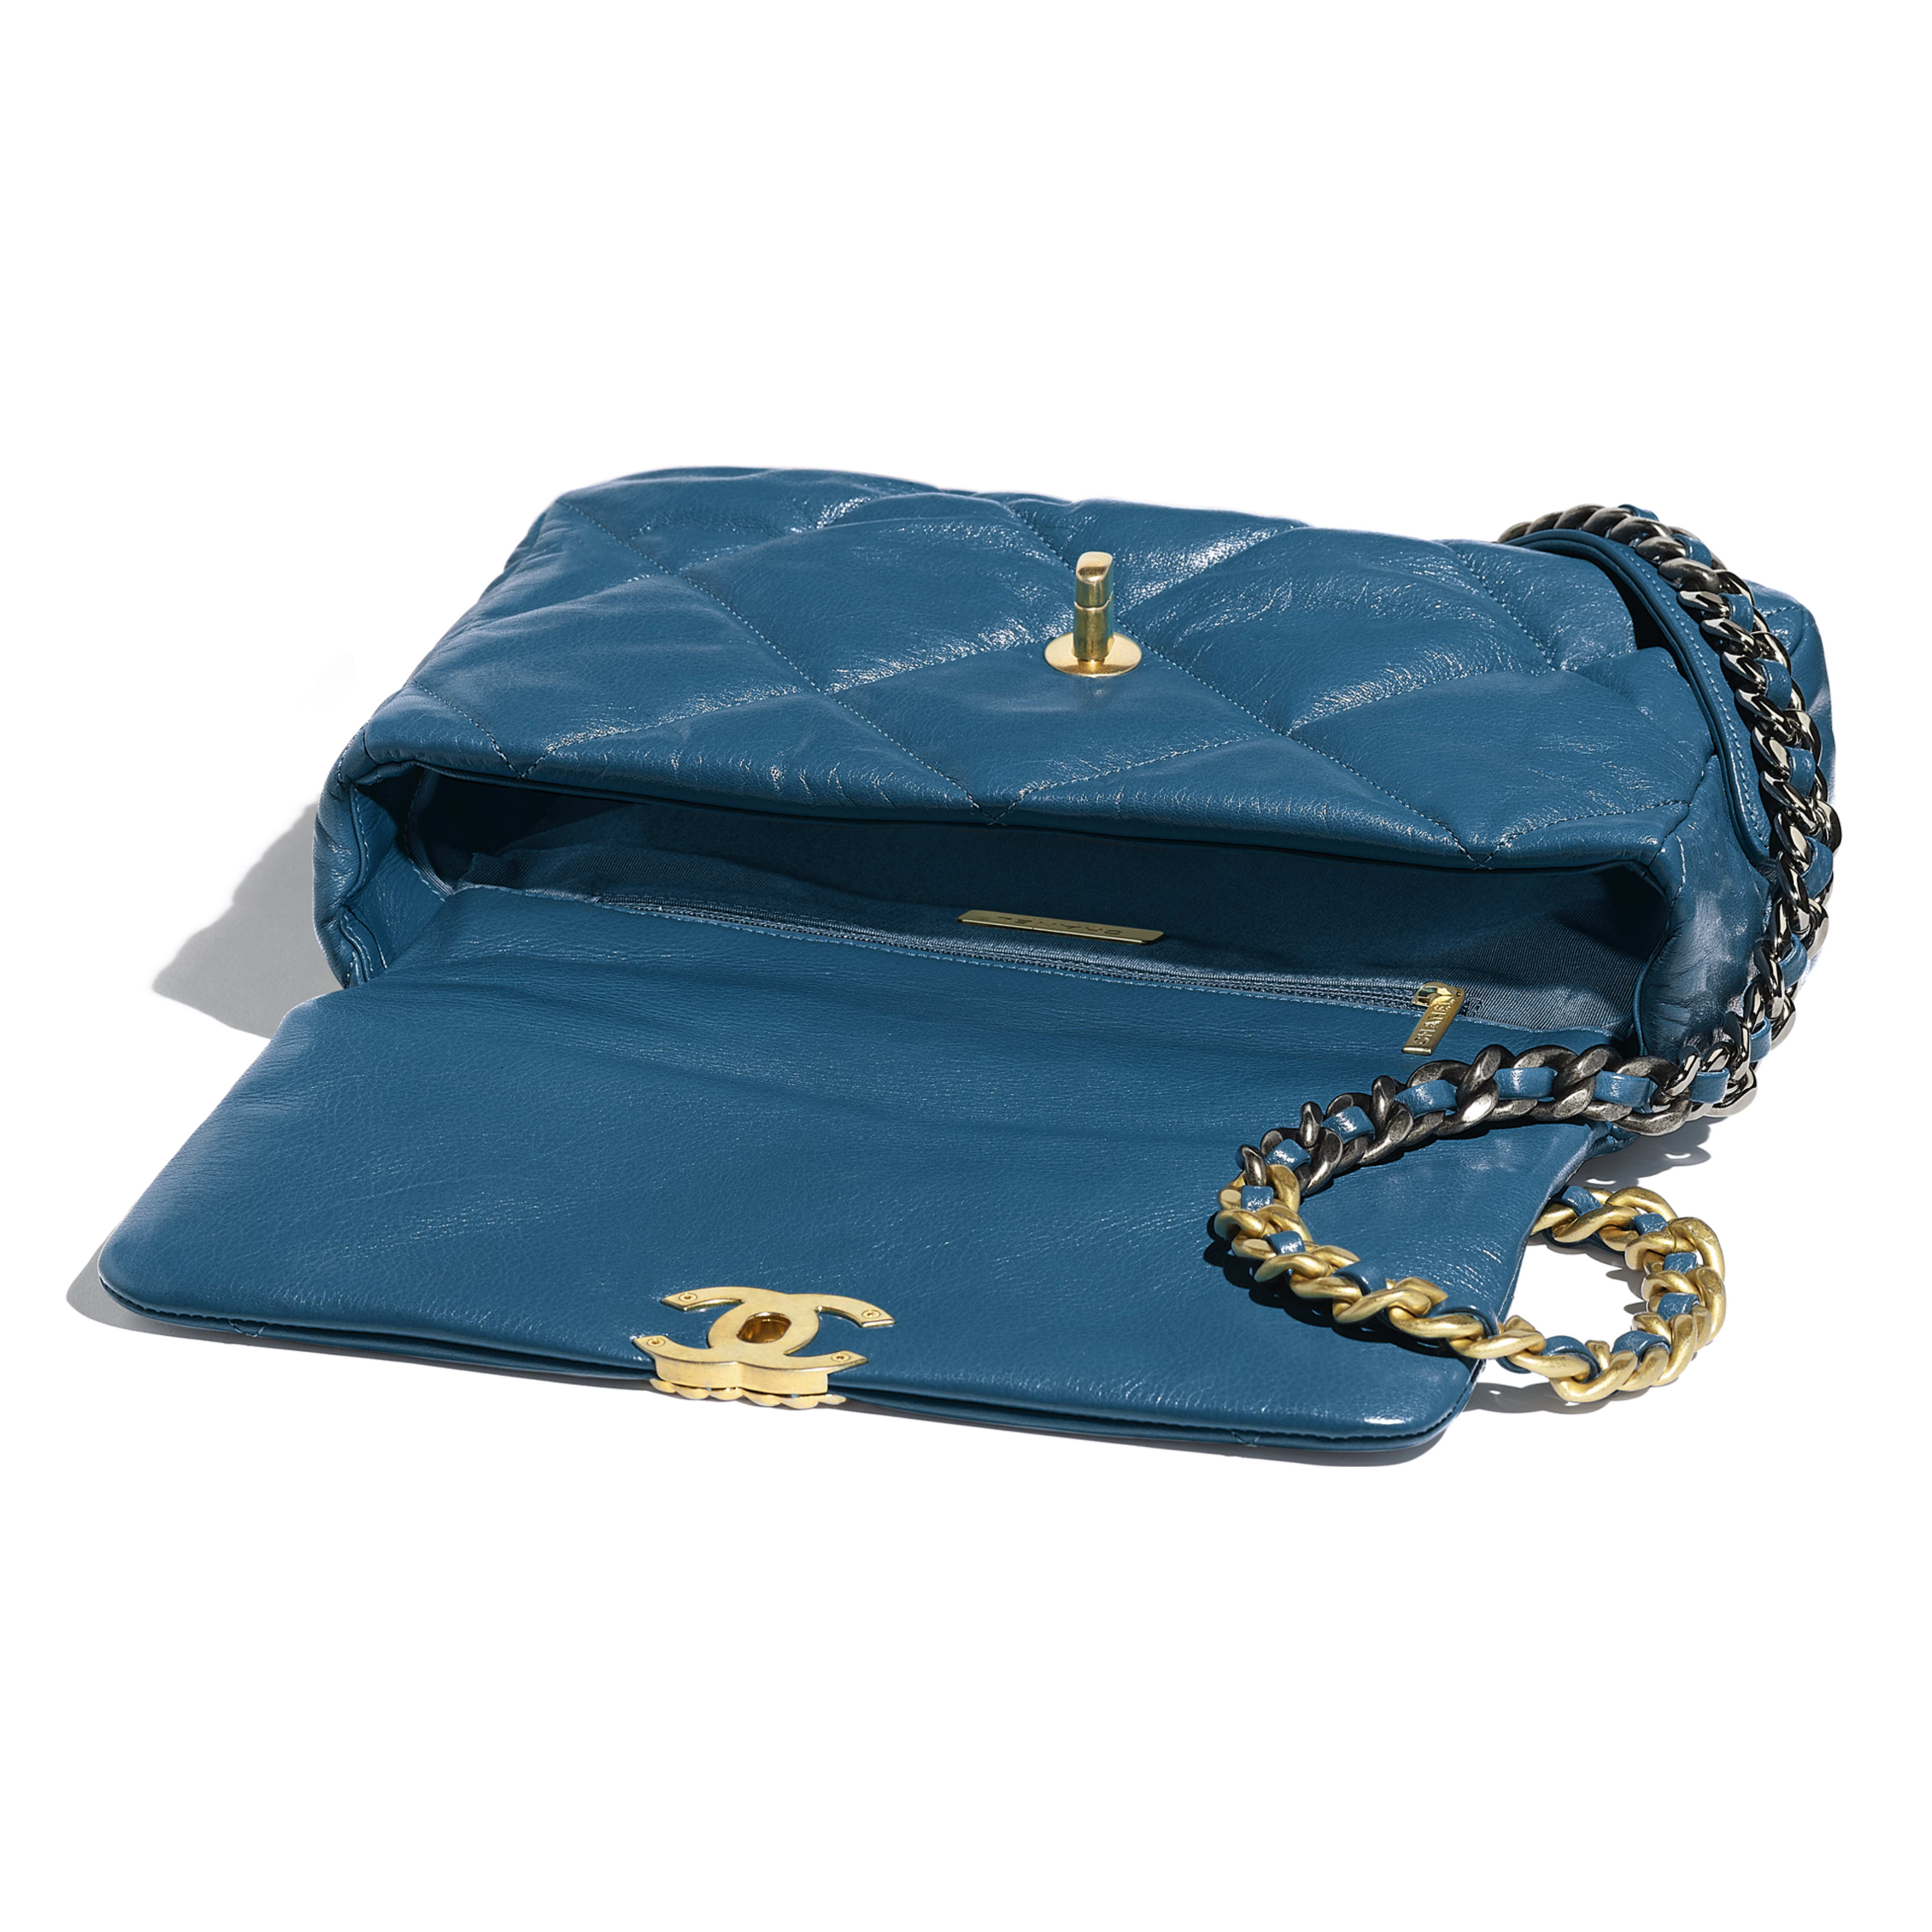 CHANEL 19 Large Flap Bag - Turquoise - Goatskin, Gold-Tone, Silver-Tone & Ruthenium-Finish Metal - Other view - see full sized version